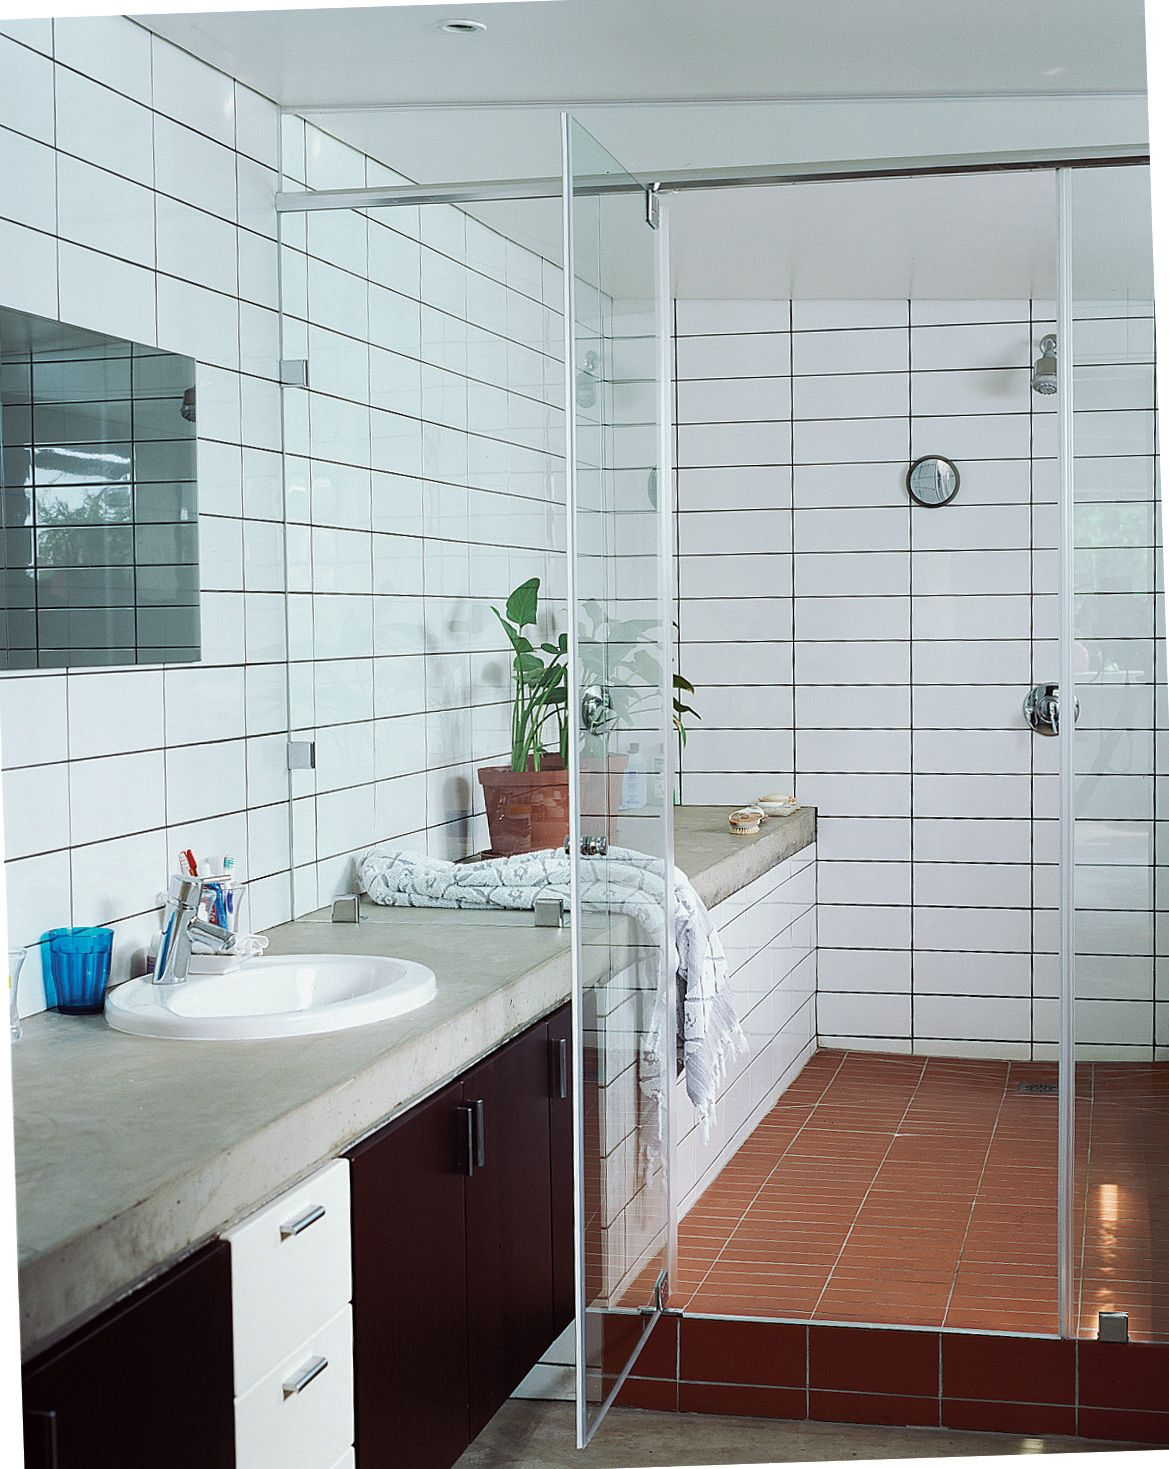 Amazing Bathroom - White & Terra Cotta Tiles, Cement Counters, Large ...